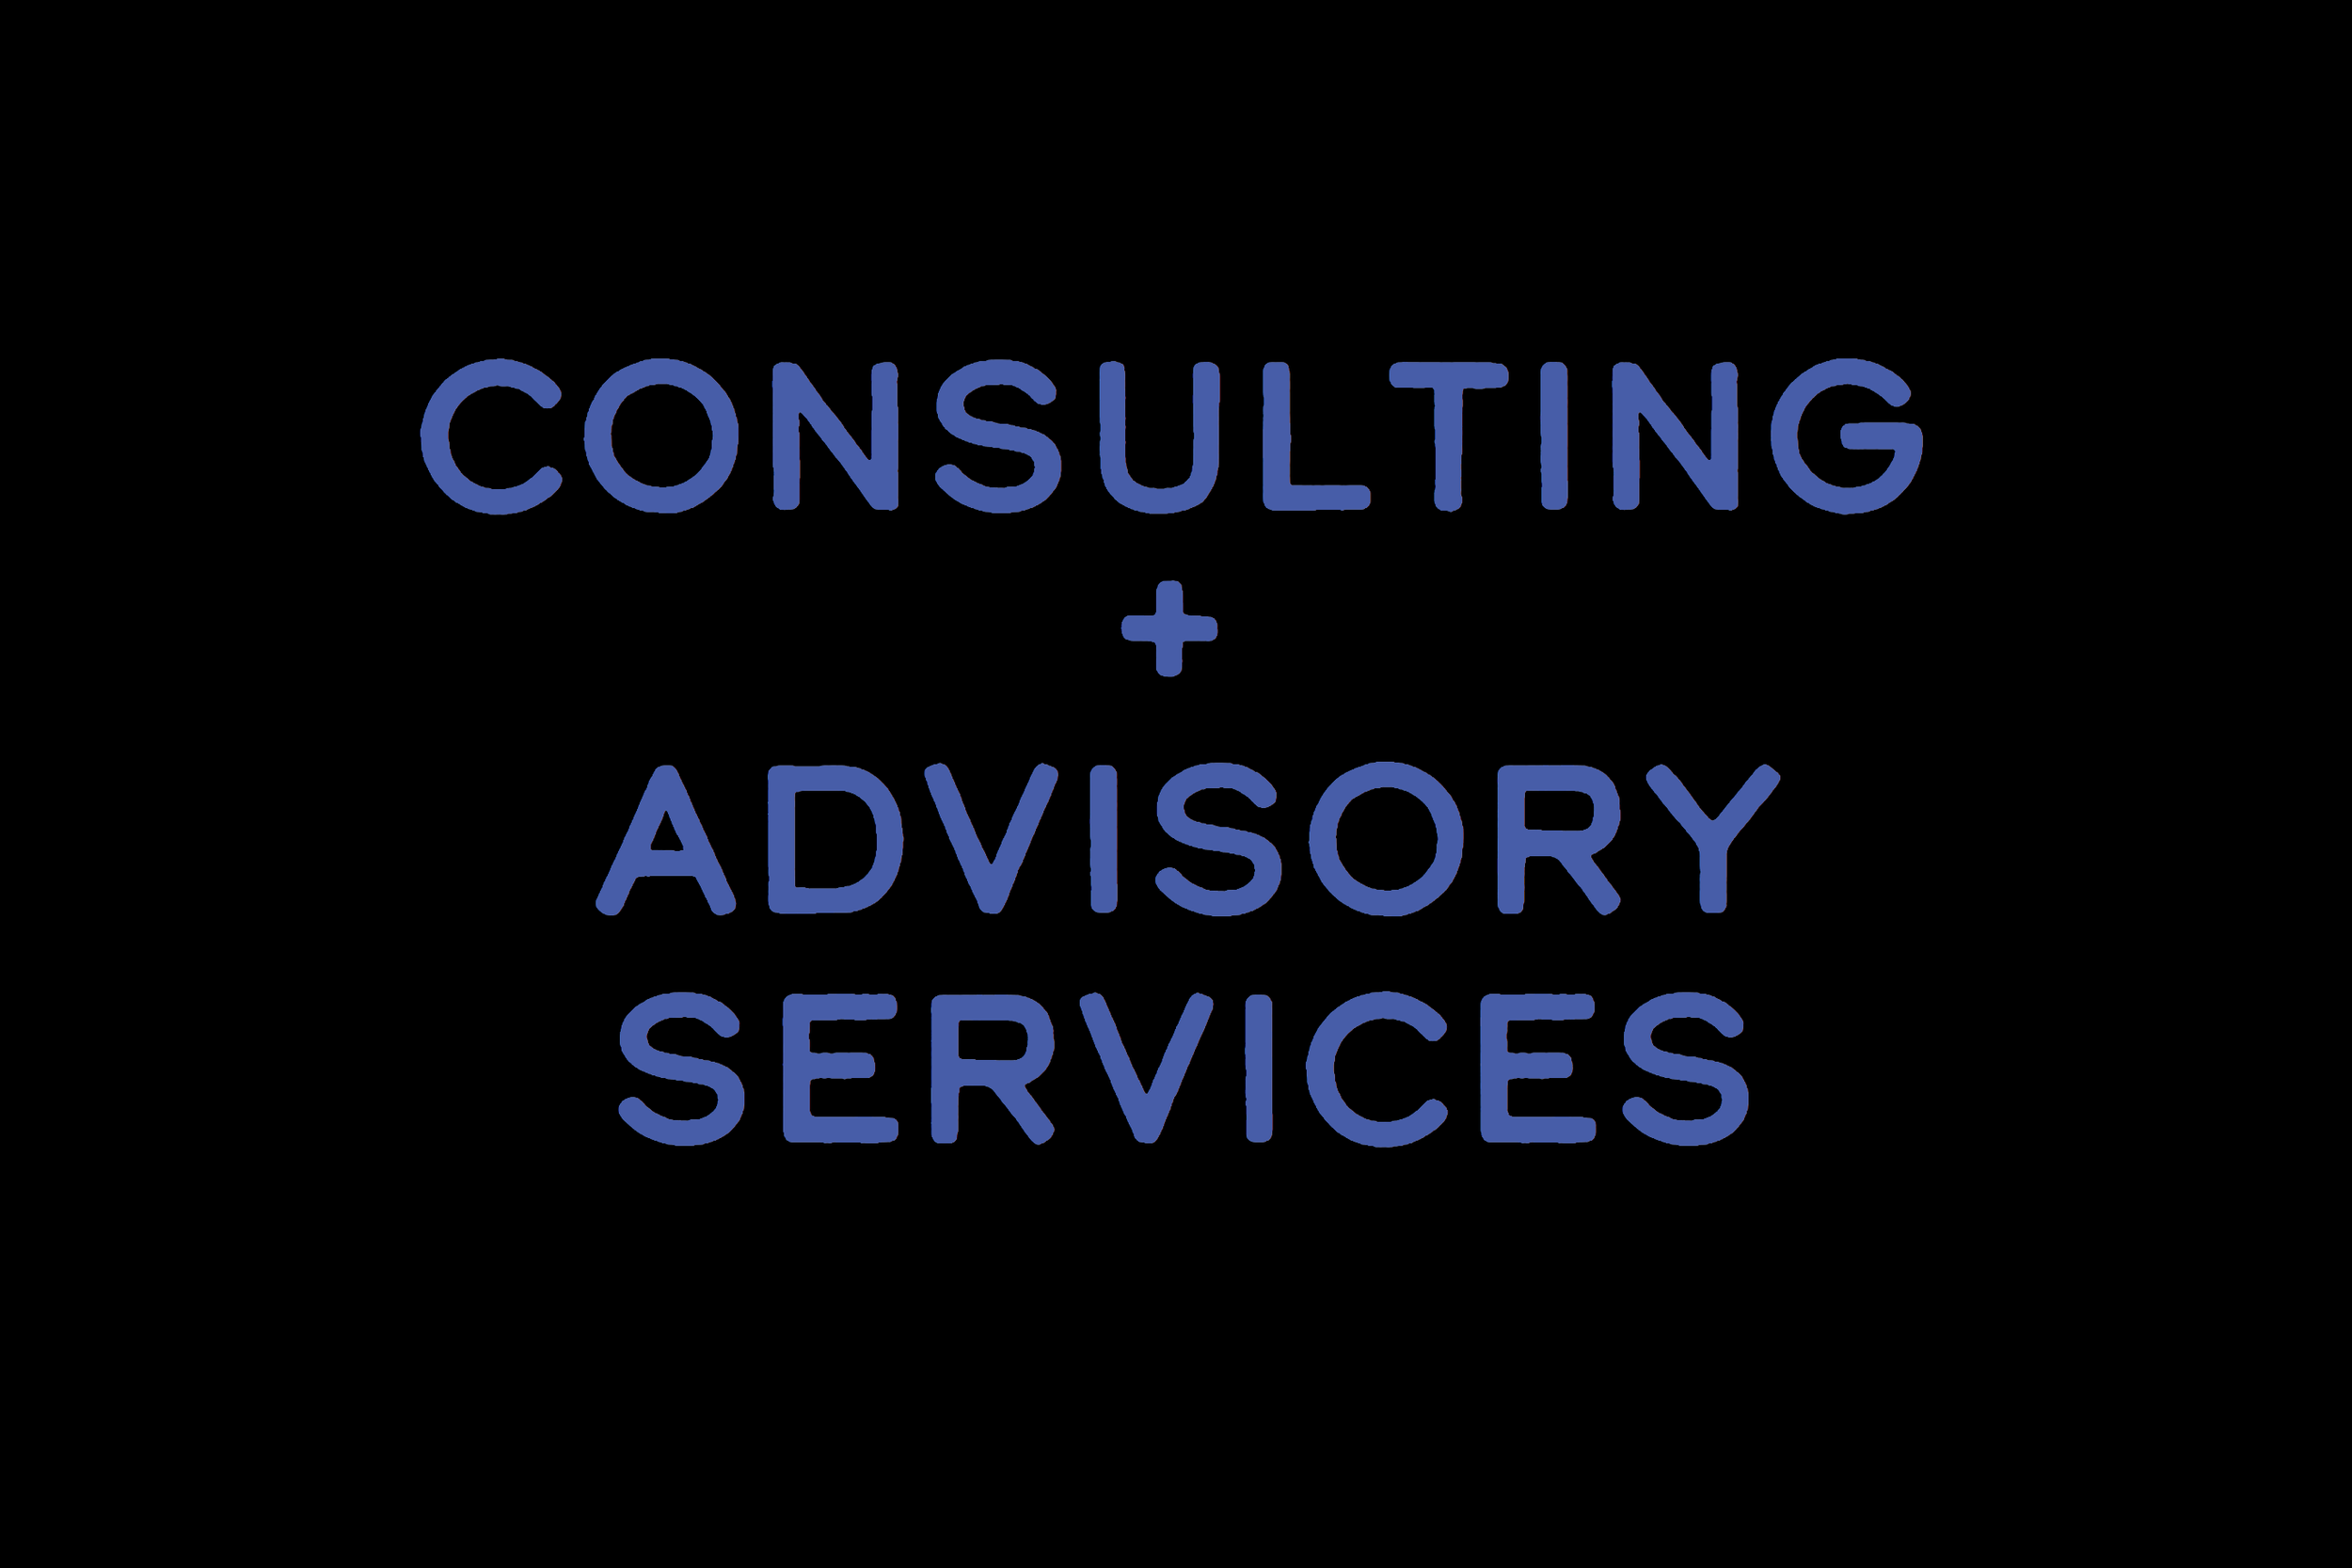 consulting and advisory svcs.png